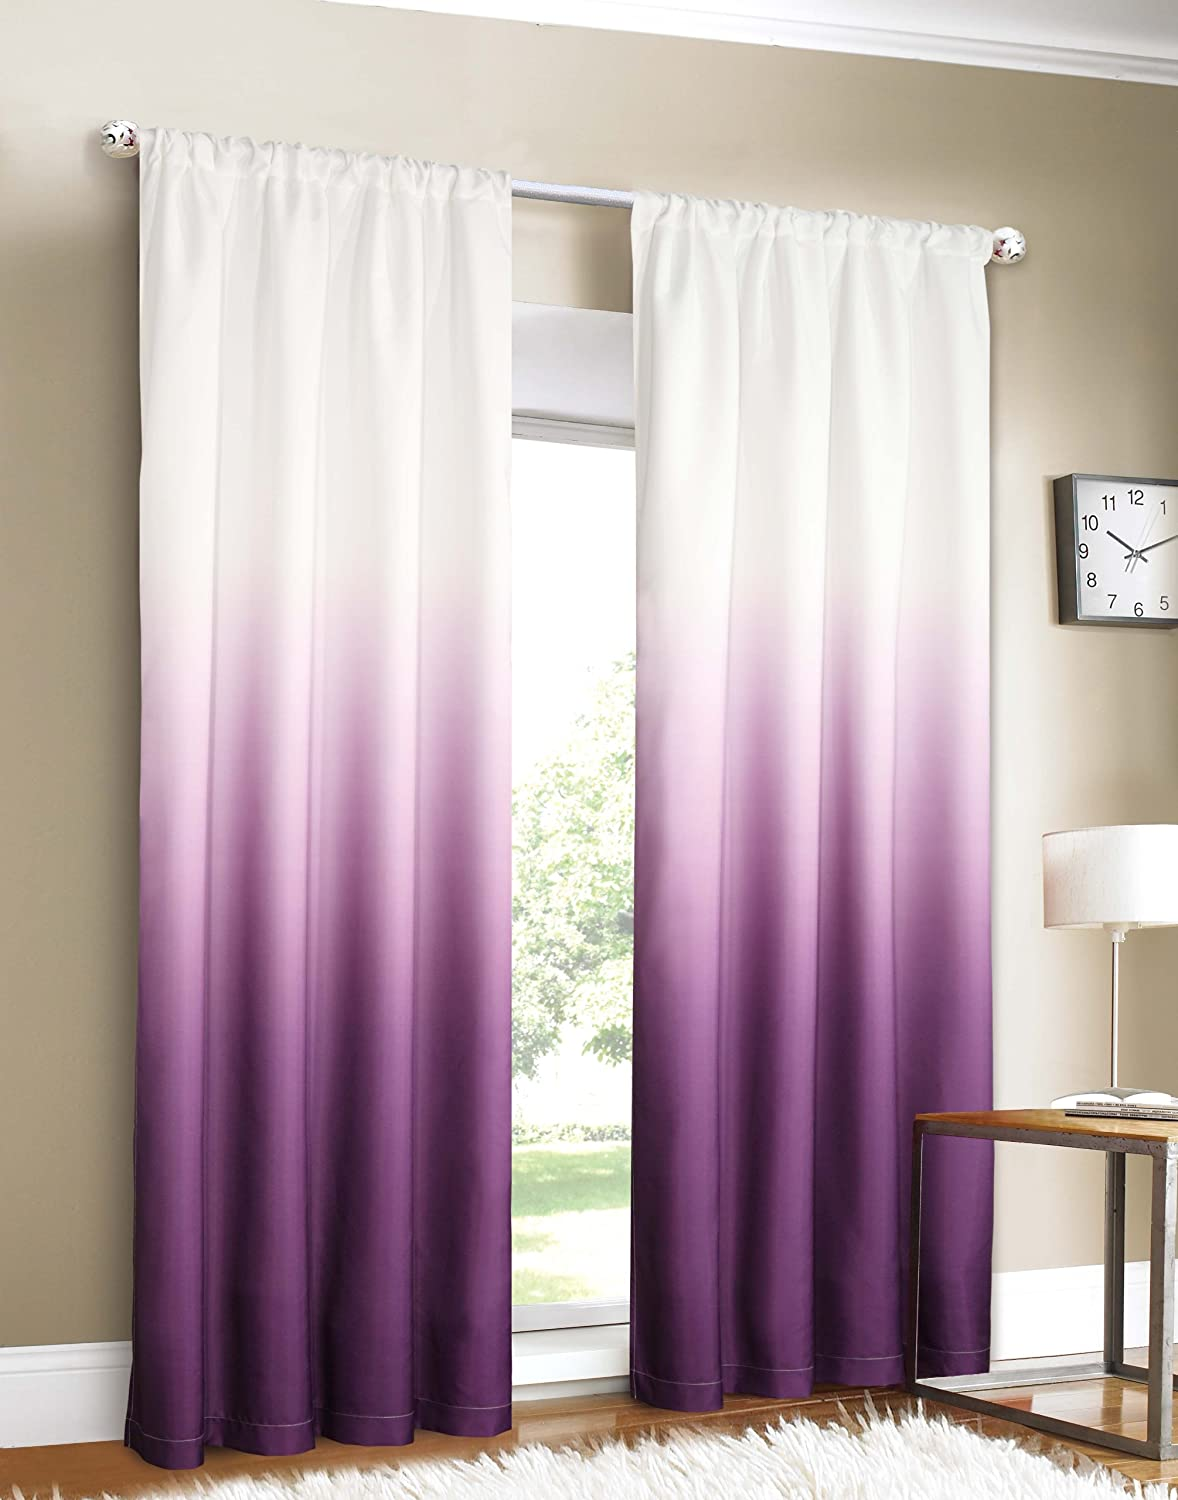 with living curtains burgundy decor grommets purple design designs beautiful panels photo curtain room pastel for blackout fearsome